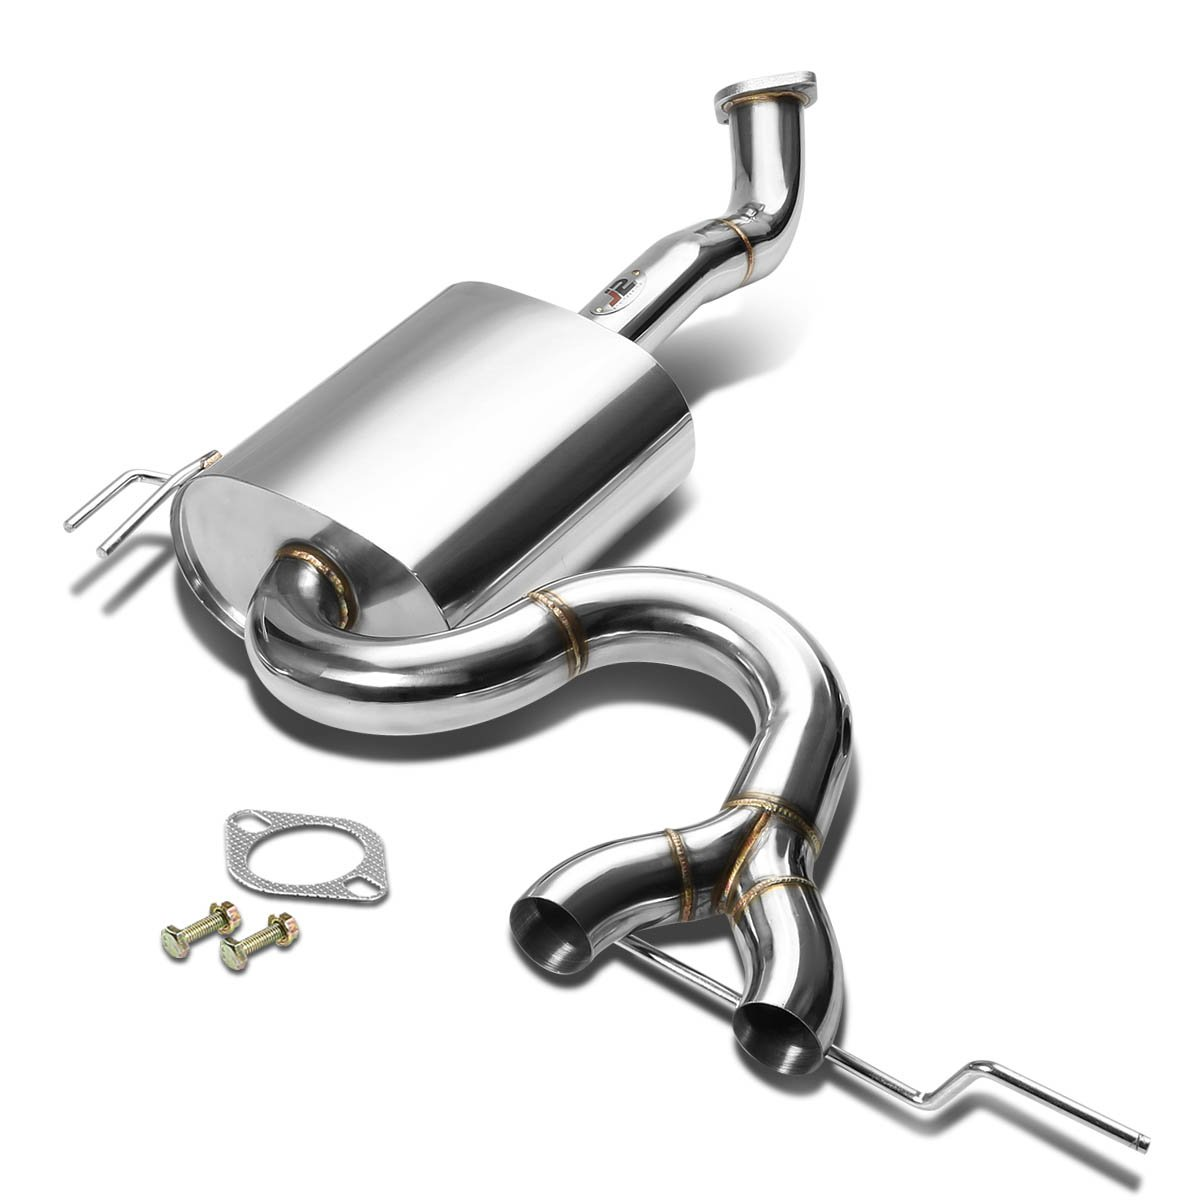 amazon j2 engineering dual 4 5 outlet exhaust axle back 6.7 Cummins Performance Turbo amazon j2 engineering dual 4 5 outlet exhaust axle back catback system for veloster base automotive